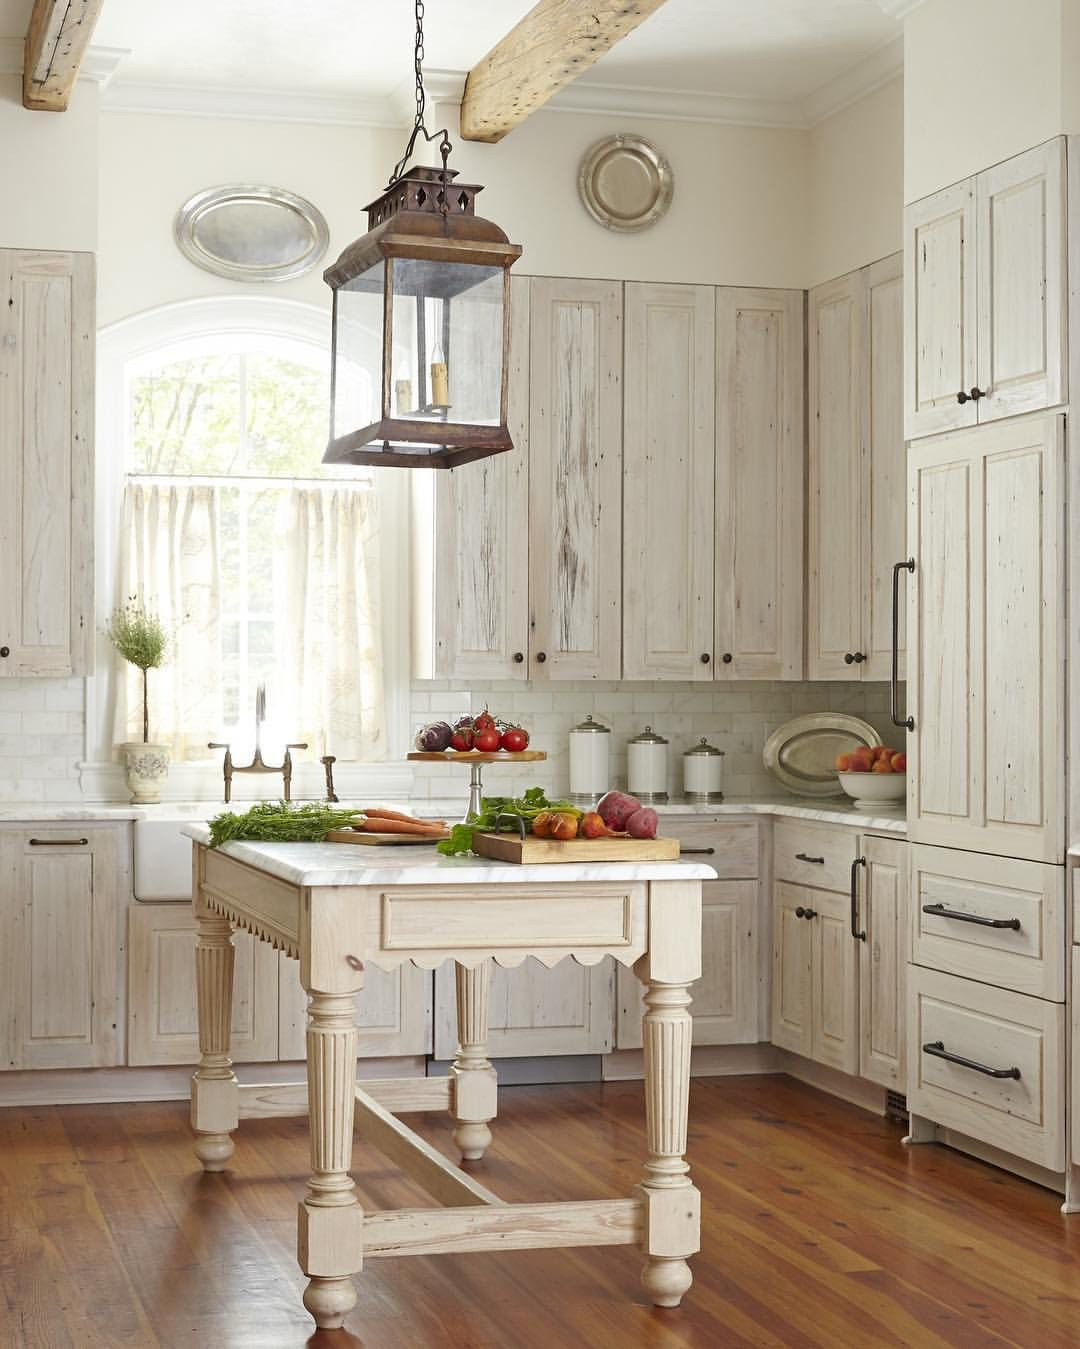 Oldfarmhouseٹ Reclaimed Cypress Gets A New Life With A Little Kitchen Cabinets Decor Whitewash Kitchen Cabinets Country Kitchen White washed wood kitchen cabinets